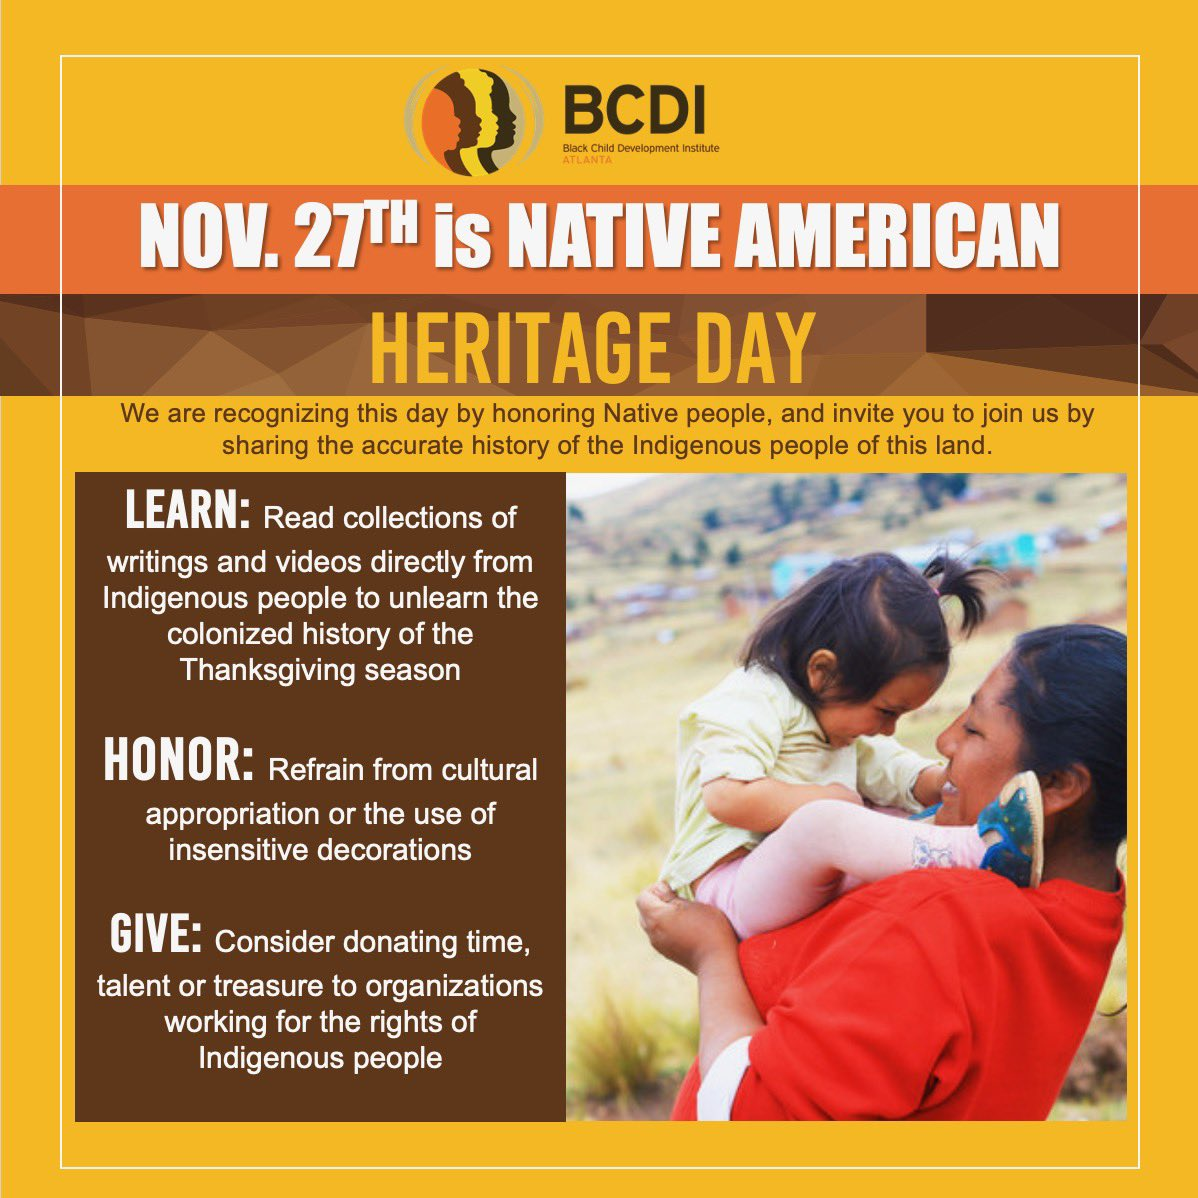 Today is #NativeAmericanHeritageDay!   We are recognizing this day by honoring Native people, and invite you to join us by sharing the accurate history of the Indigenous people of this land.